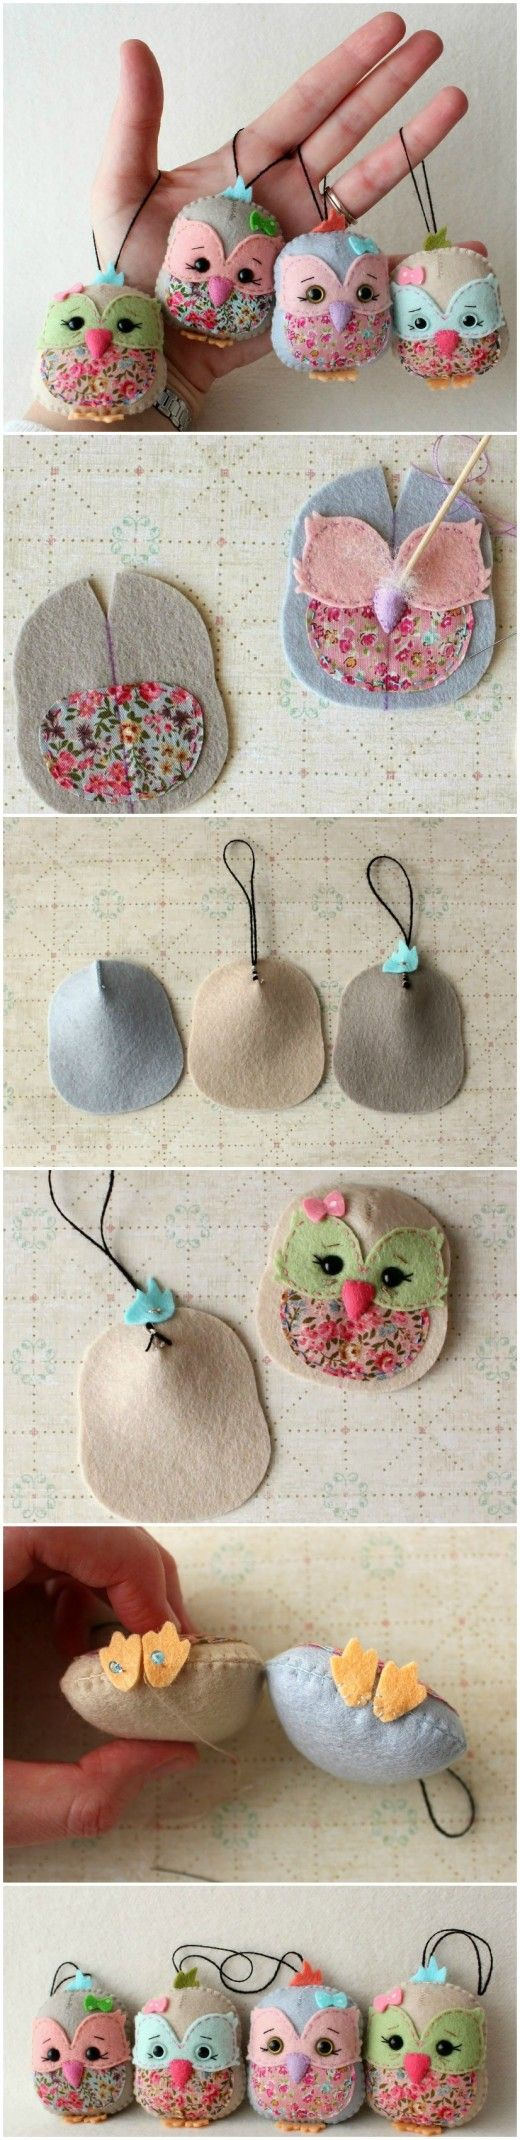 Gingermelon Dolls: Free Pattern – Little Lark Lavender Sachet | DIY Crafts Tips                                                                                                                                                                                 Más